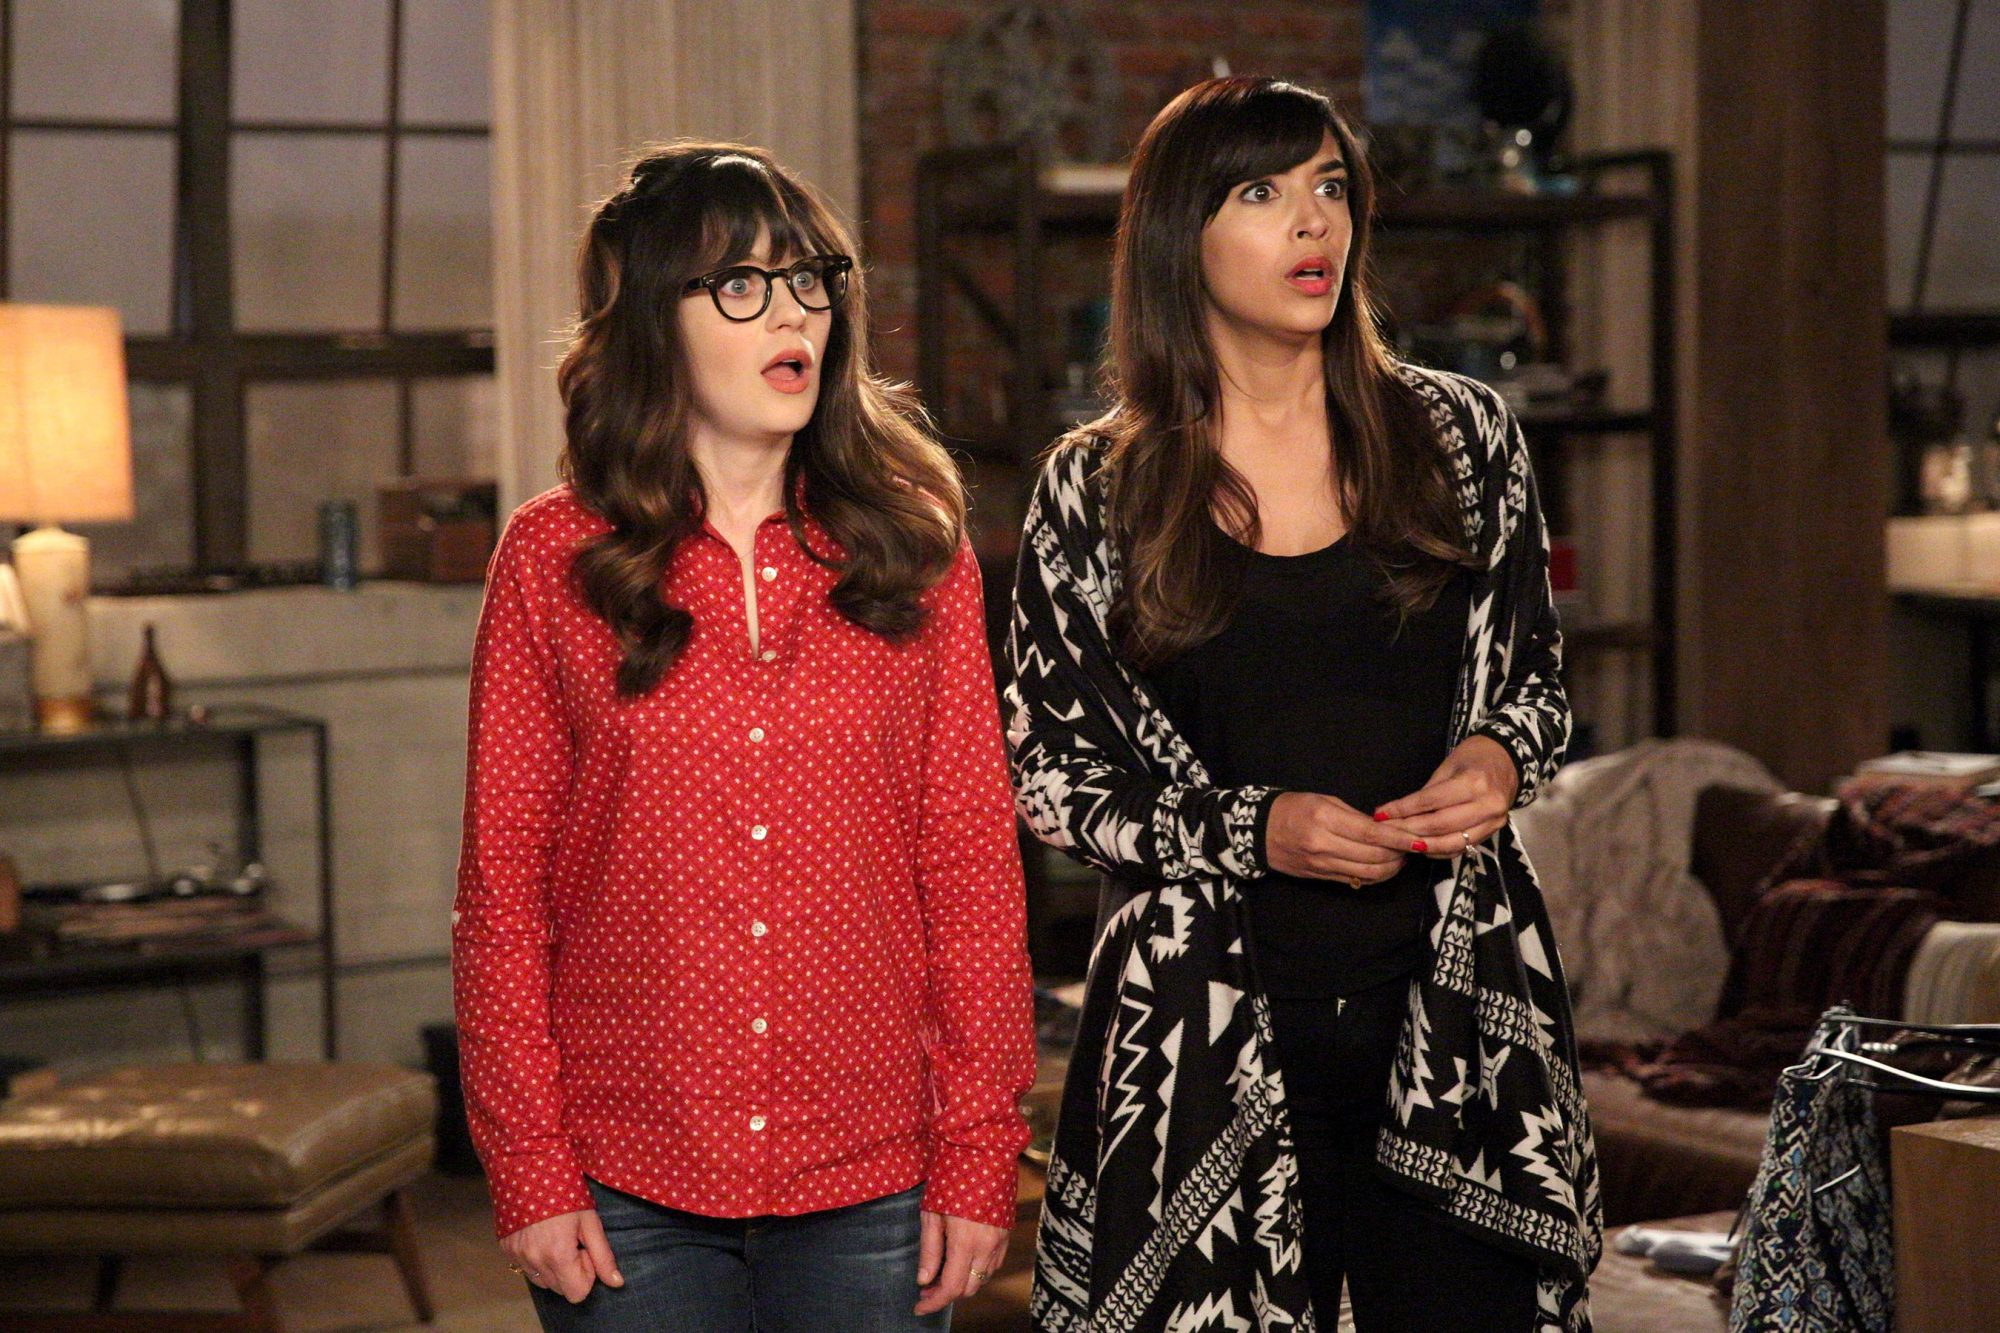 Jess and Cece